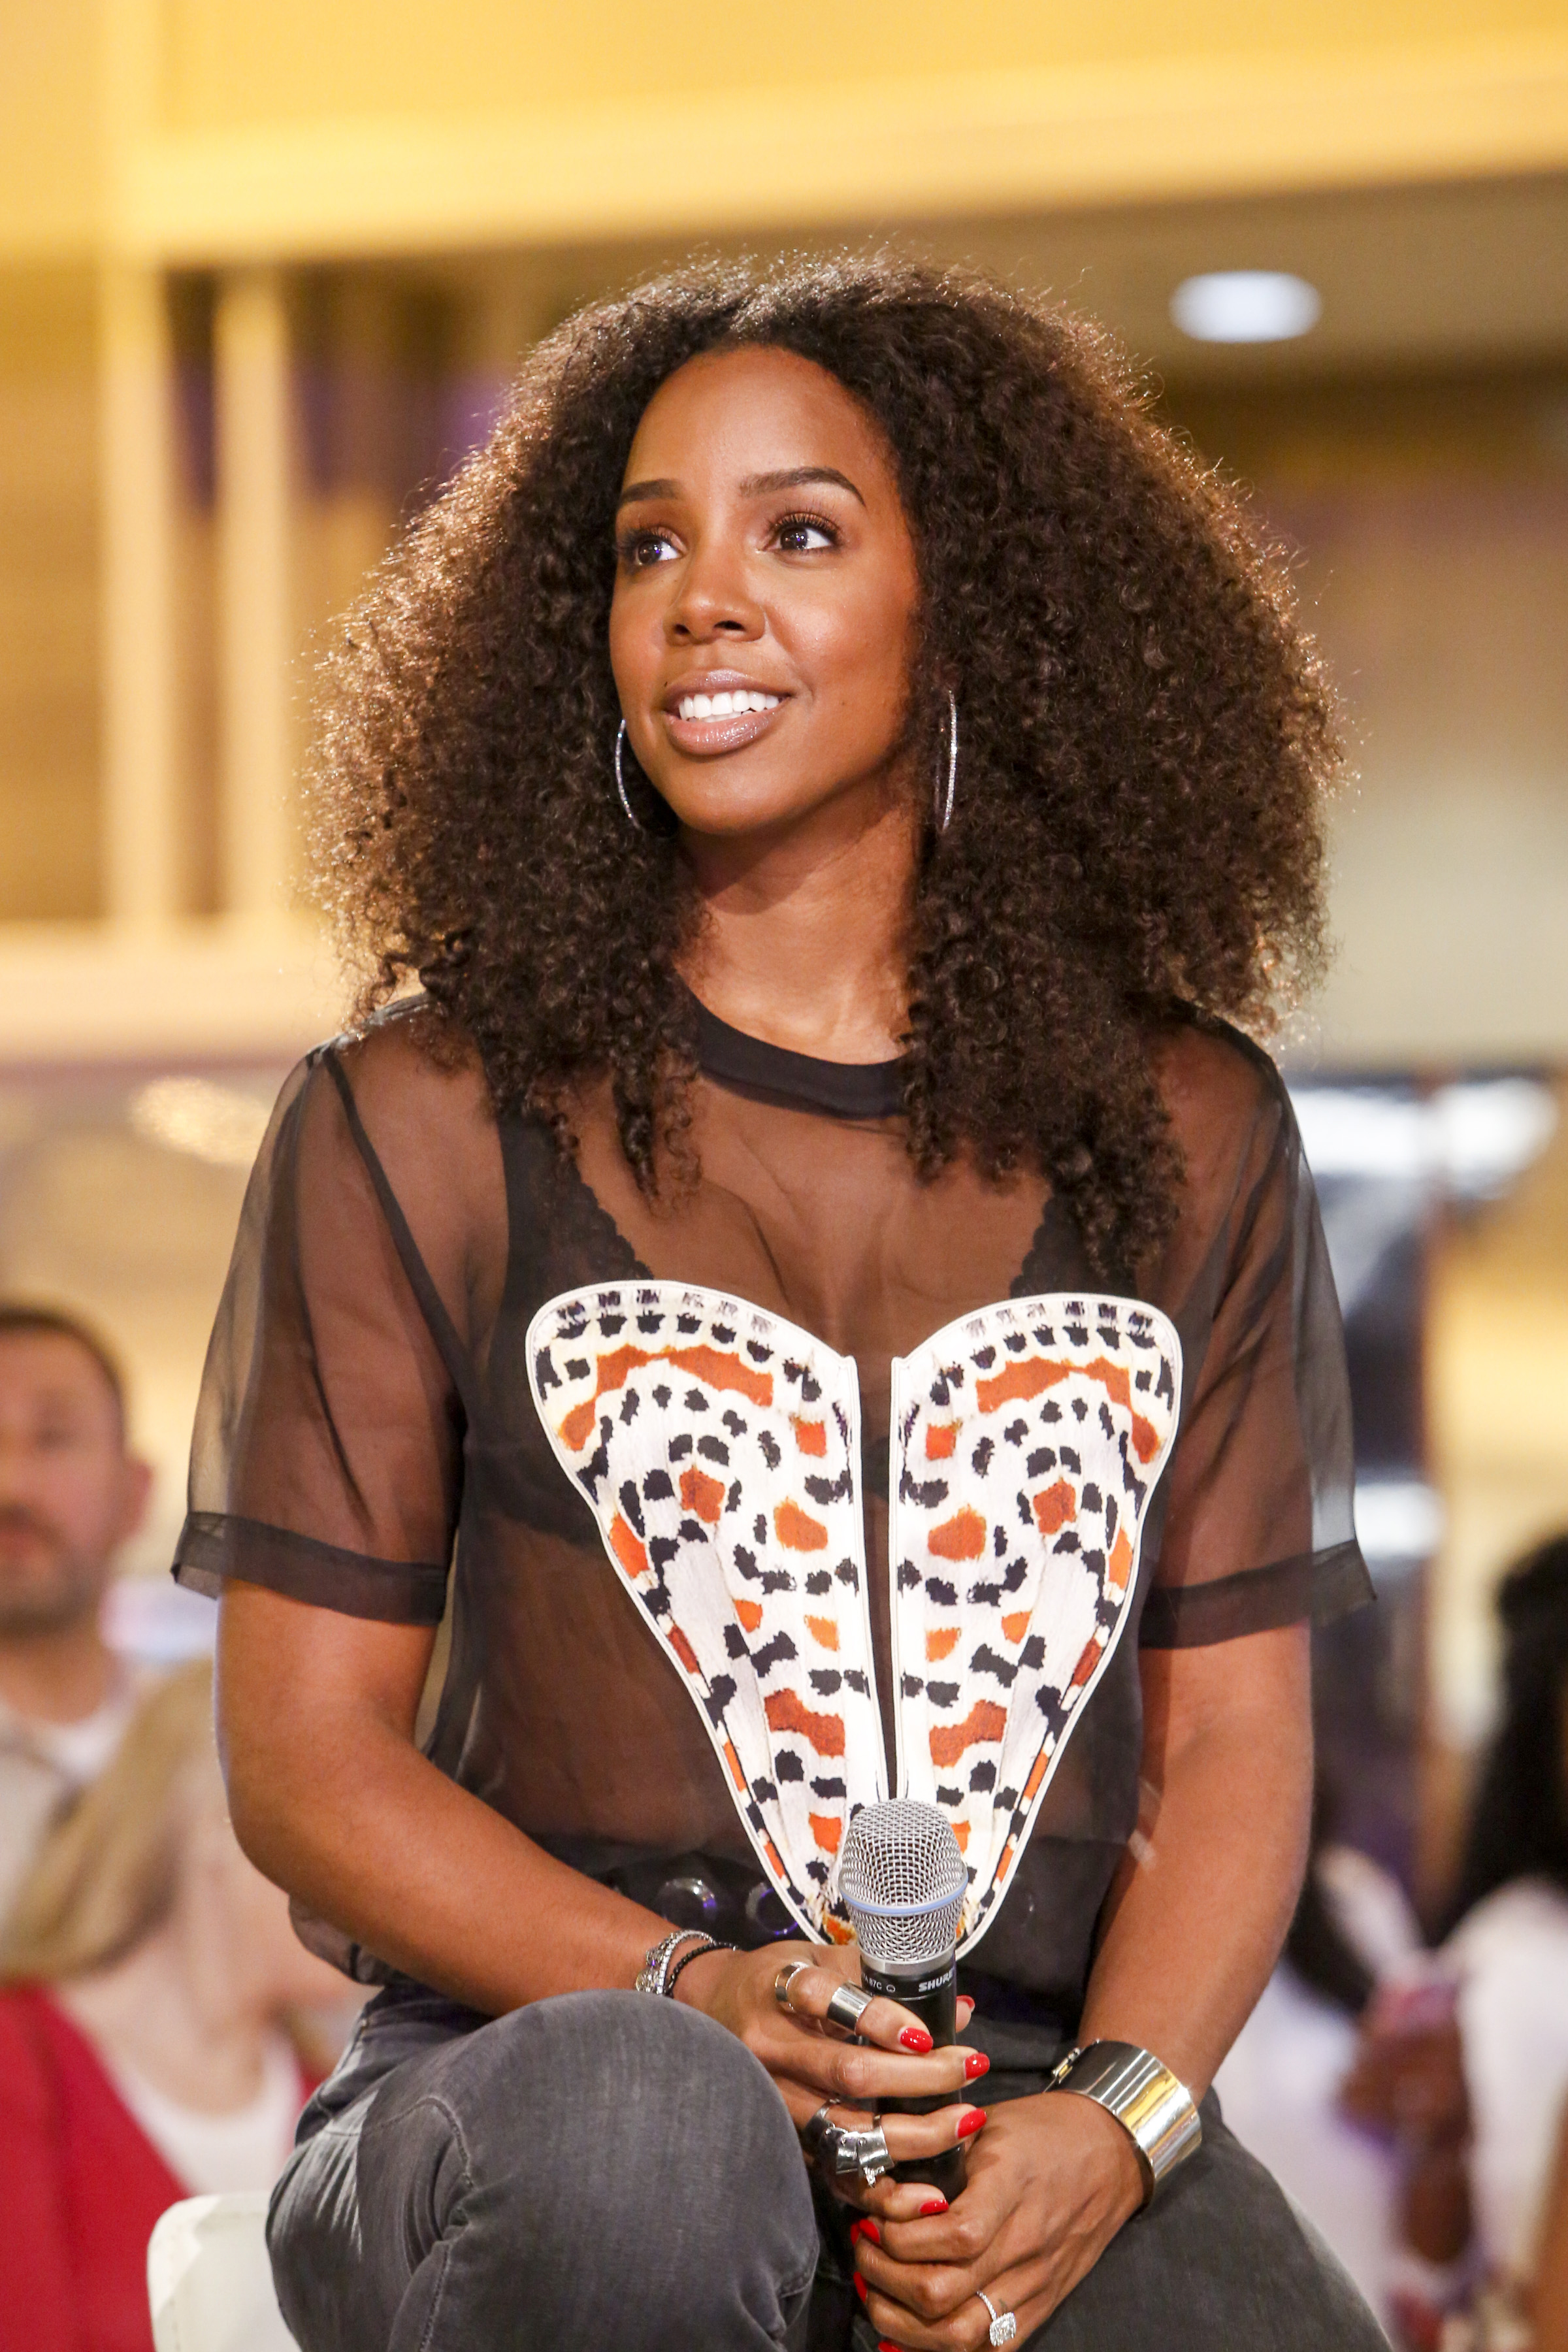 Kelly Rowland attends the Samsung Galaxy Experience at the 2015 ESSENCE Festival on July 4, 2015 in New Orleans.